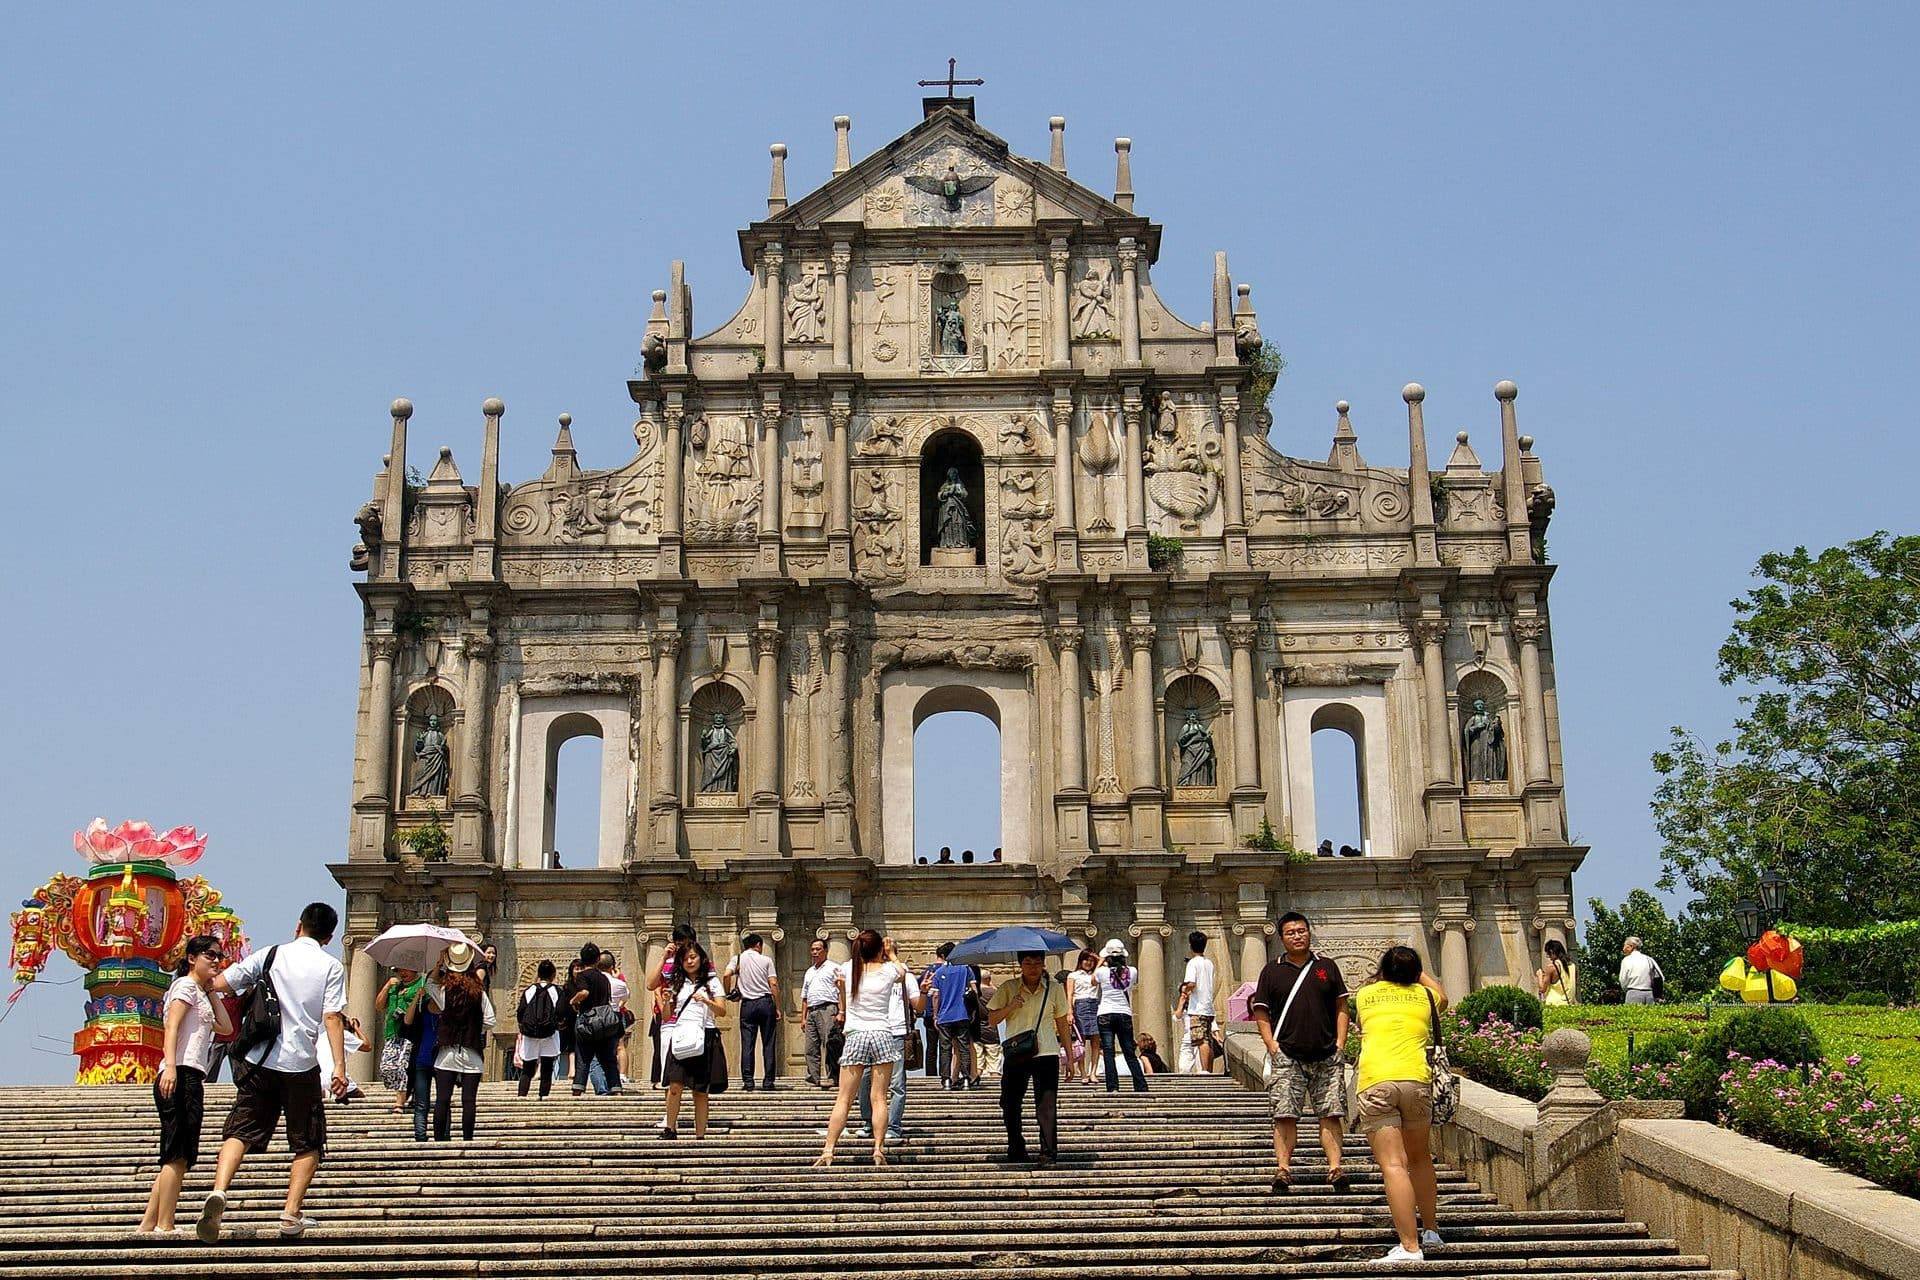 The Ruins of St Paul's, one of Macau's UNESCO World Heritage sites